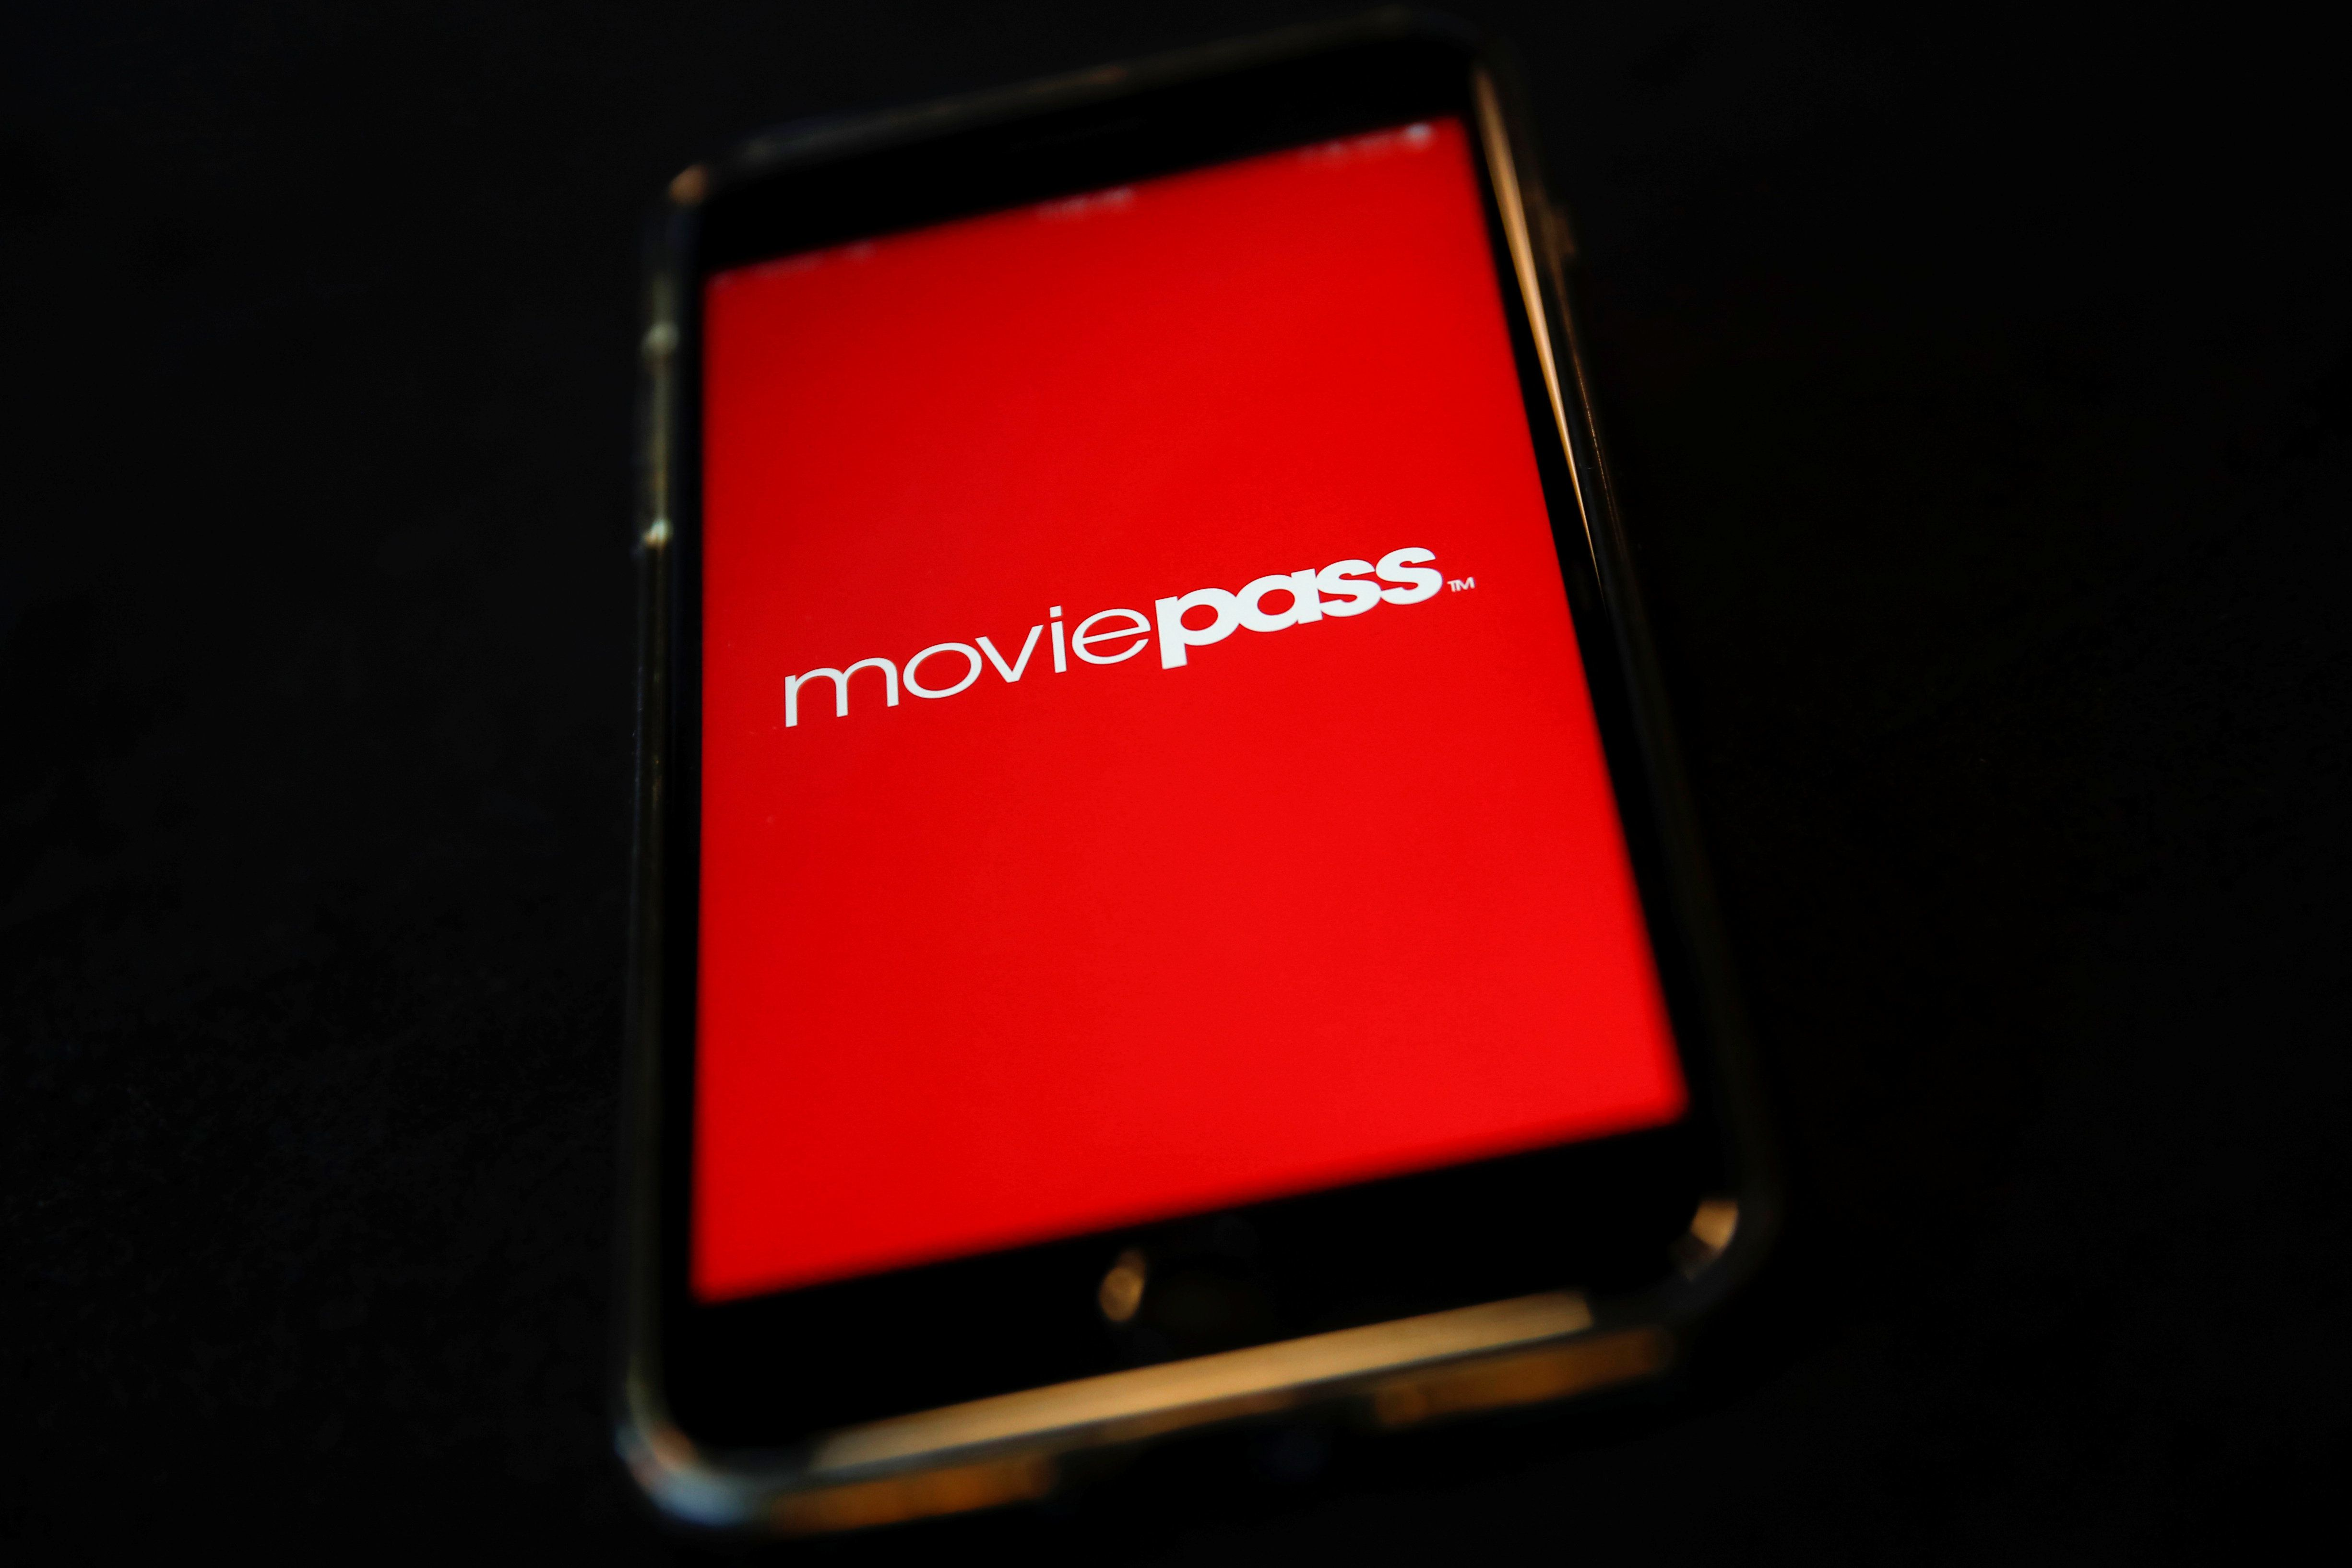 MoviePass, a U.S. movie ticket subscription app, is seen on a mobile phone in this photo illustration in New York, U.S., May 15, 2018. REUTERS/Mike Segar/Illustration